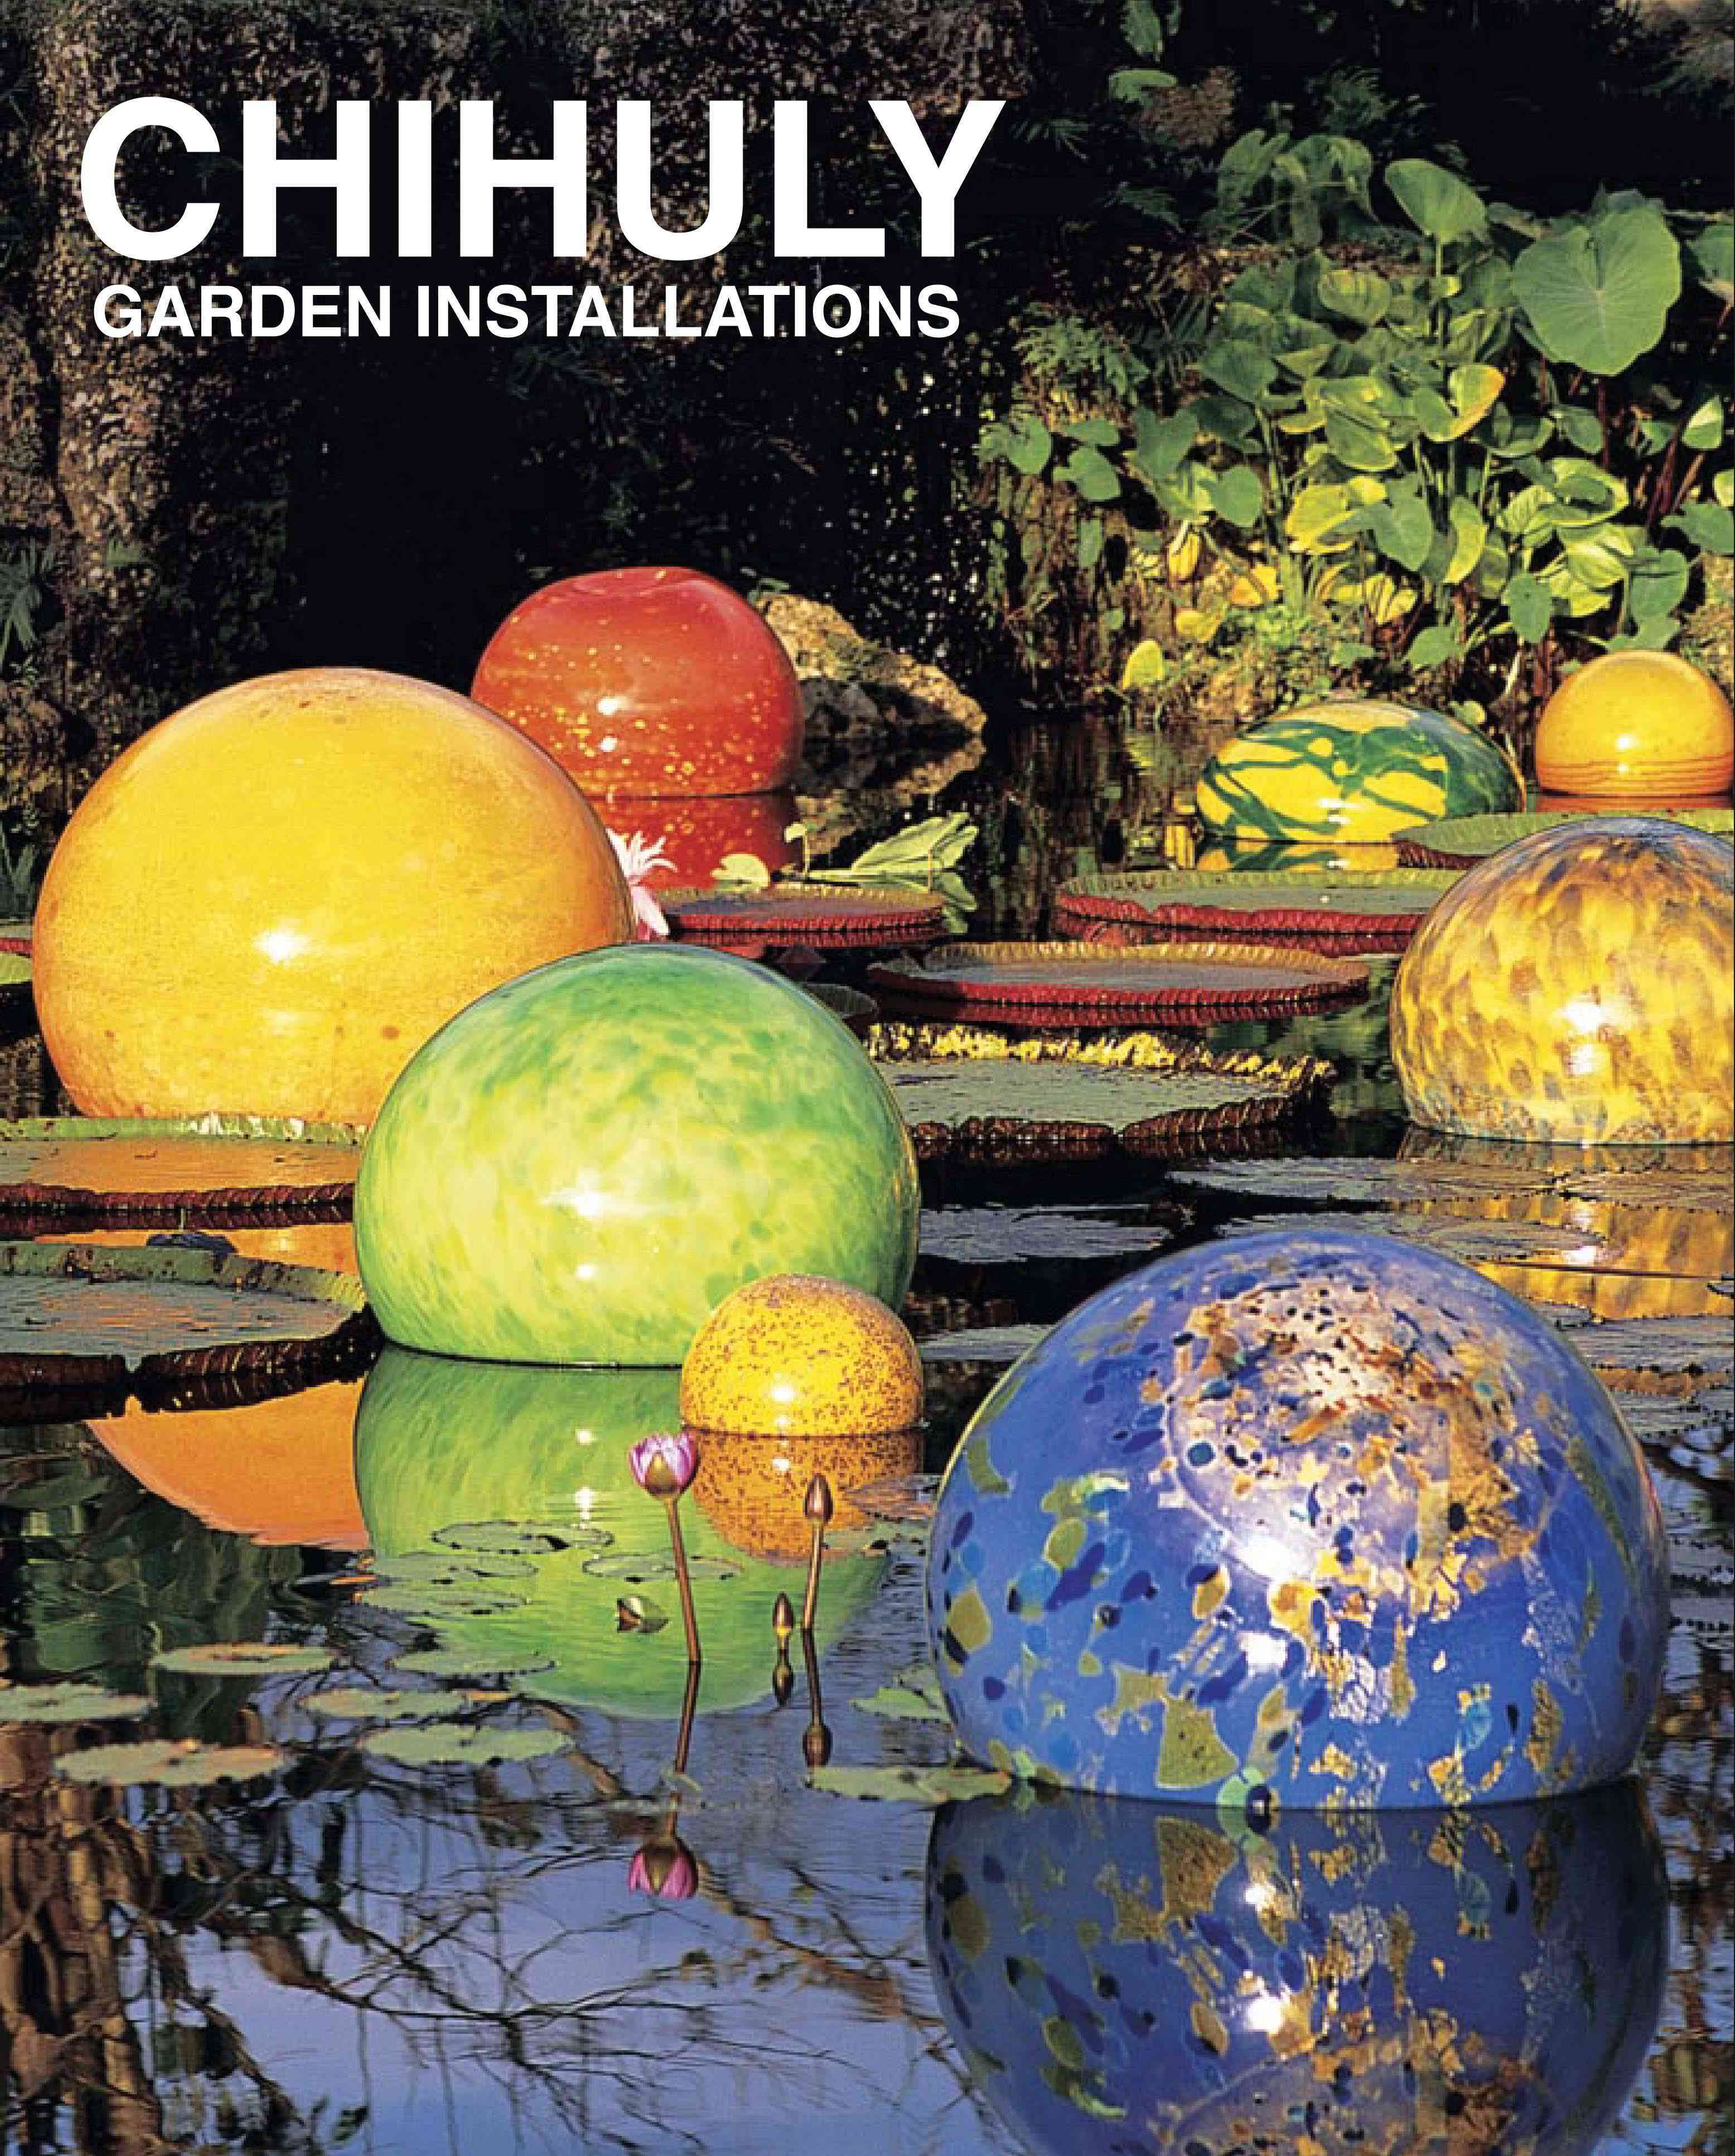 Chihuly Garden Installations (Hardcover)